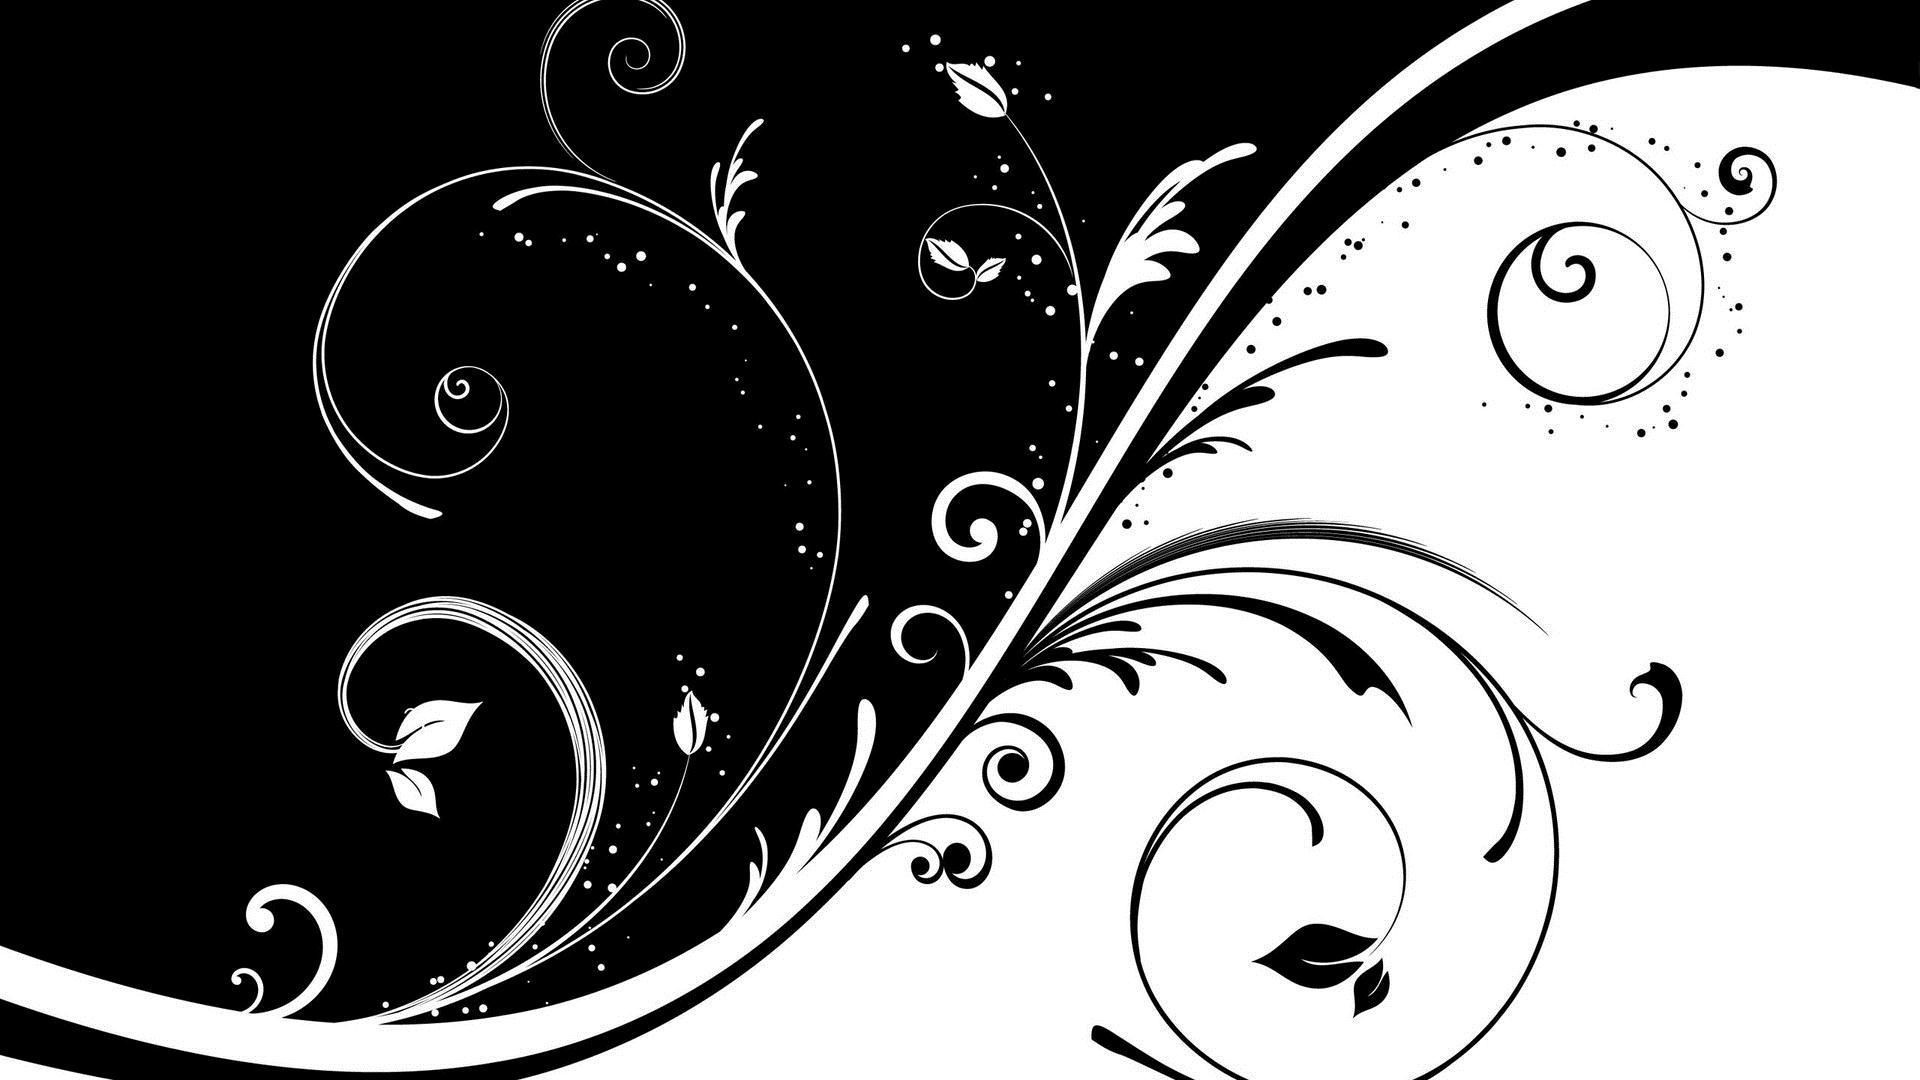 1920x1080 Download Black And White Abstract Hd Wallpaper